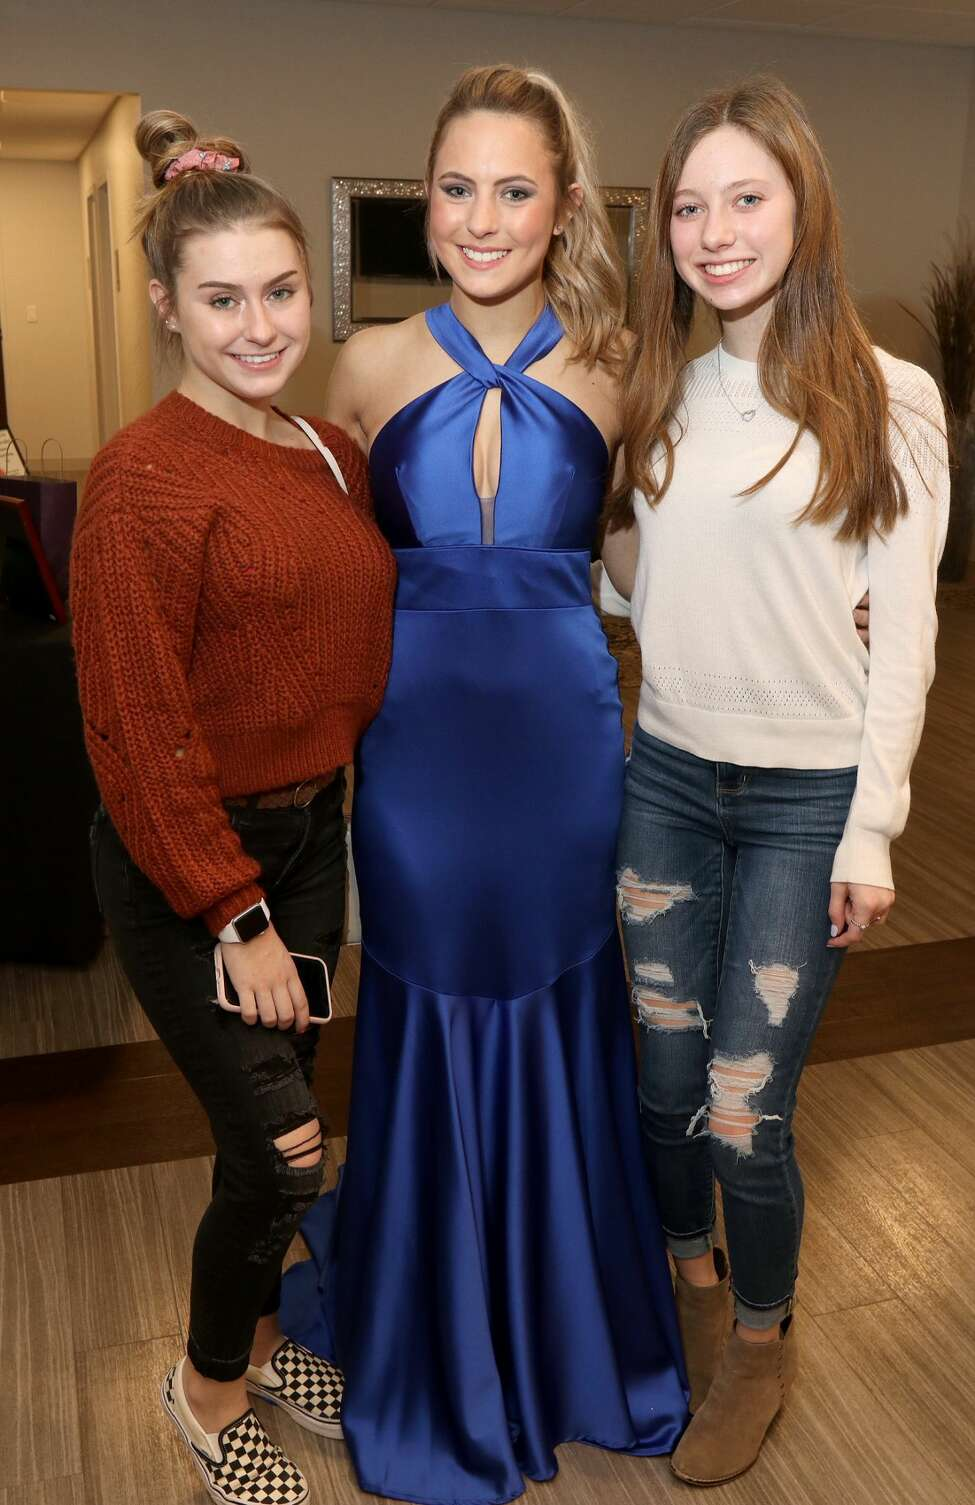 Were You Seen at Fashion for Hope presented by Azalea, with local high school students walking the runway, to benefit St. Jude Children's Research Hospital at the Pinehaven Country Club in Guilderland on Sunday, January 12, 2020?